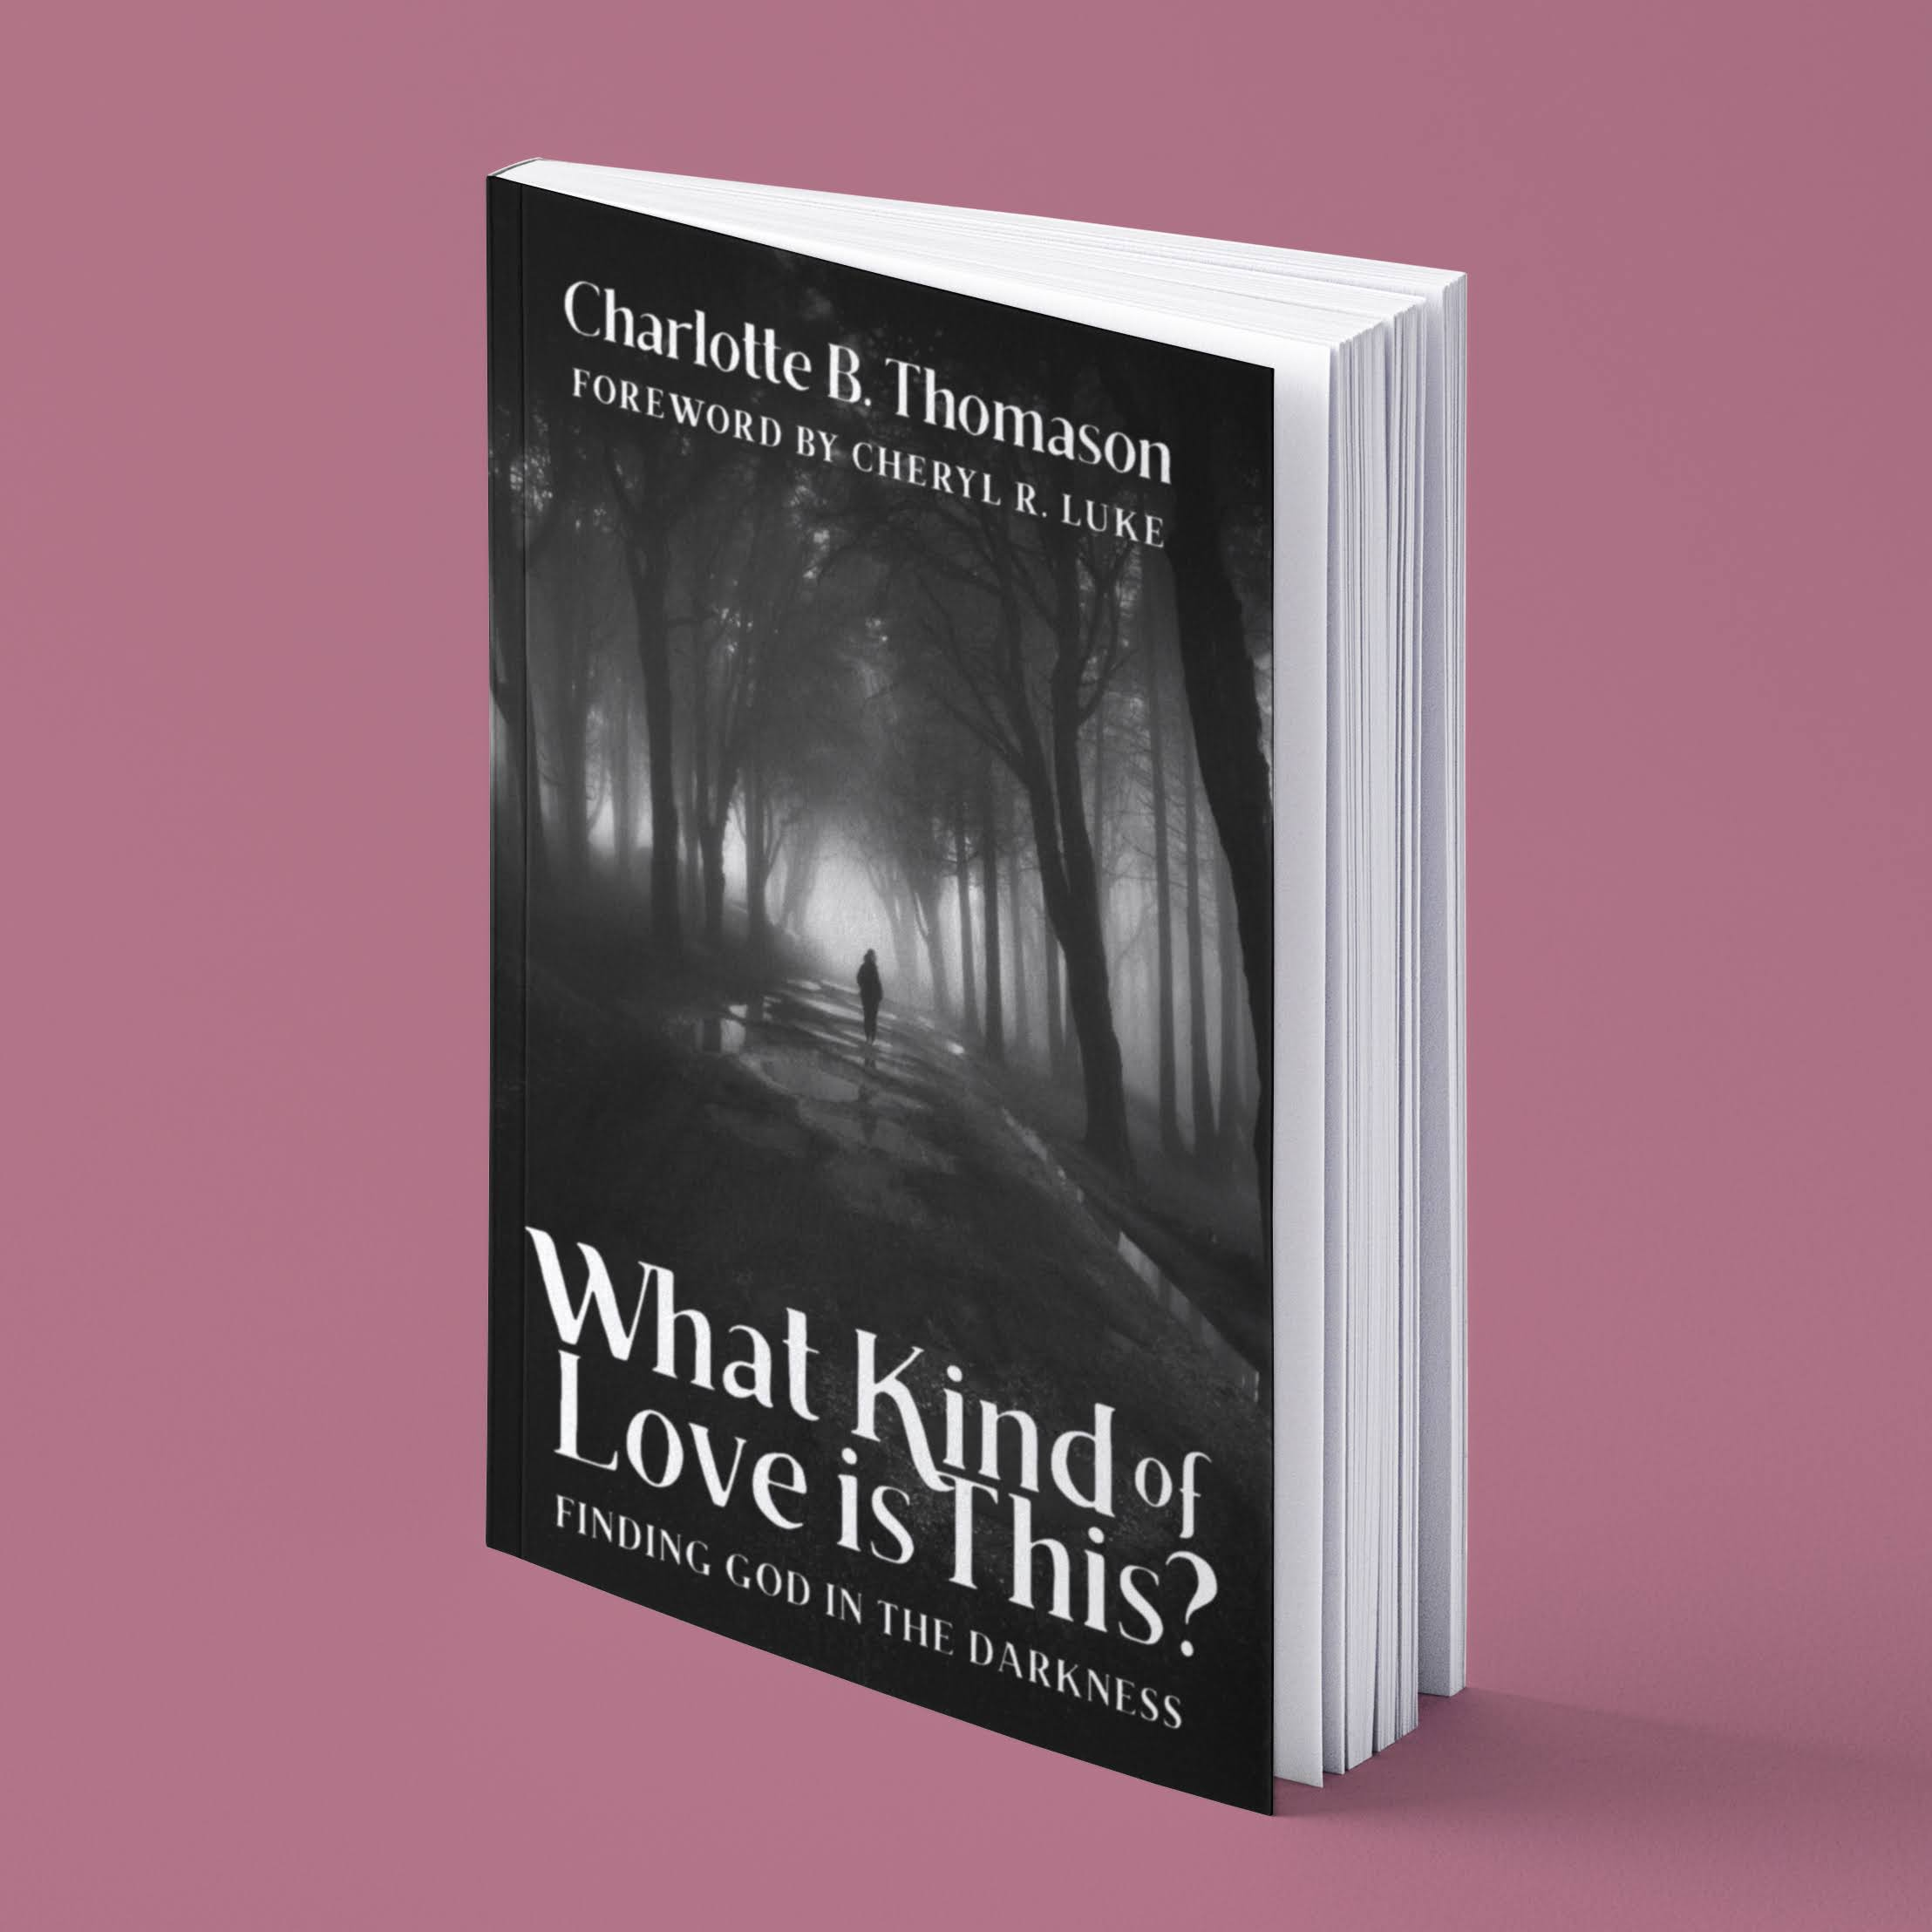 What Kind of Love is This? Finding God in the Darkness - By Charlotte Thomason.